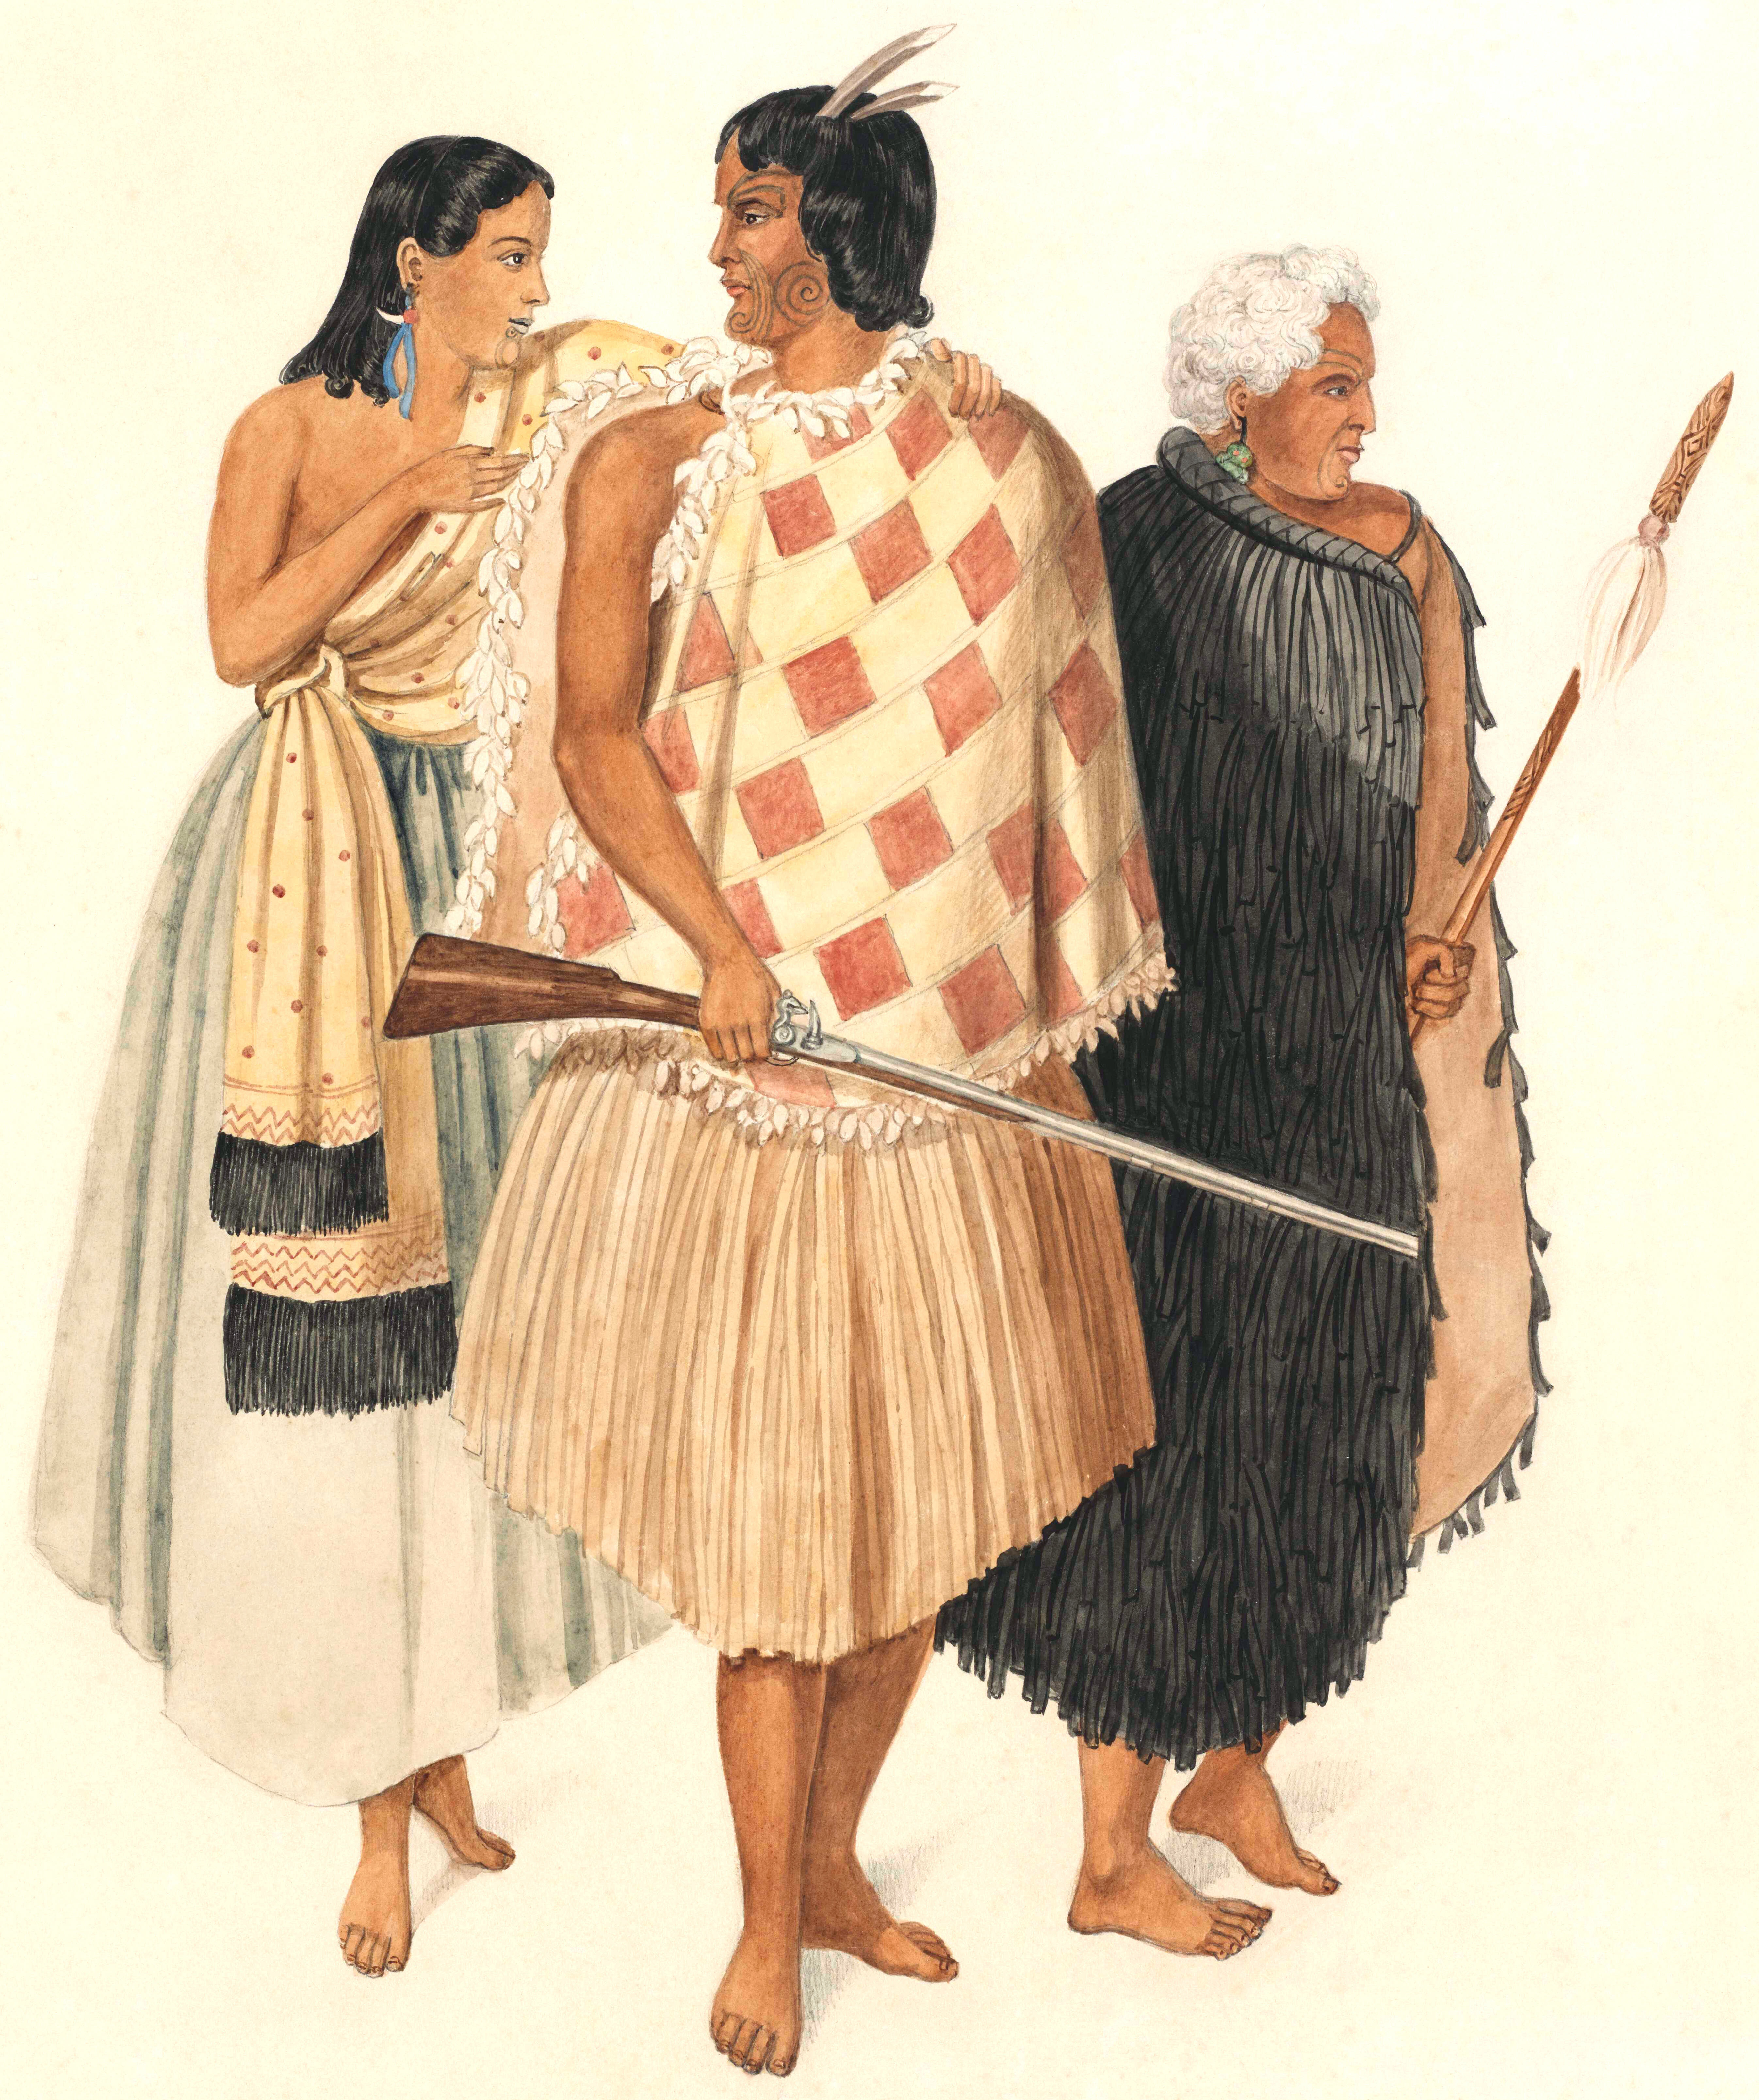 https://upload.wikimedia.org/wikipedia/commons/7/71/HekeKawiti1846.jpg